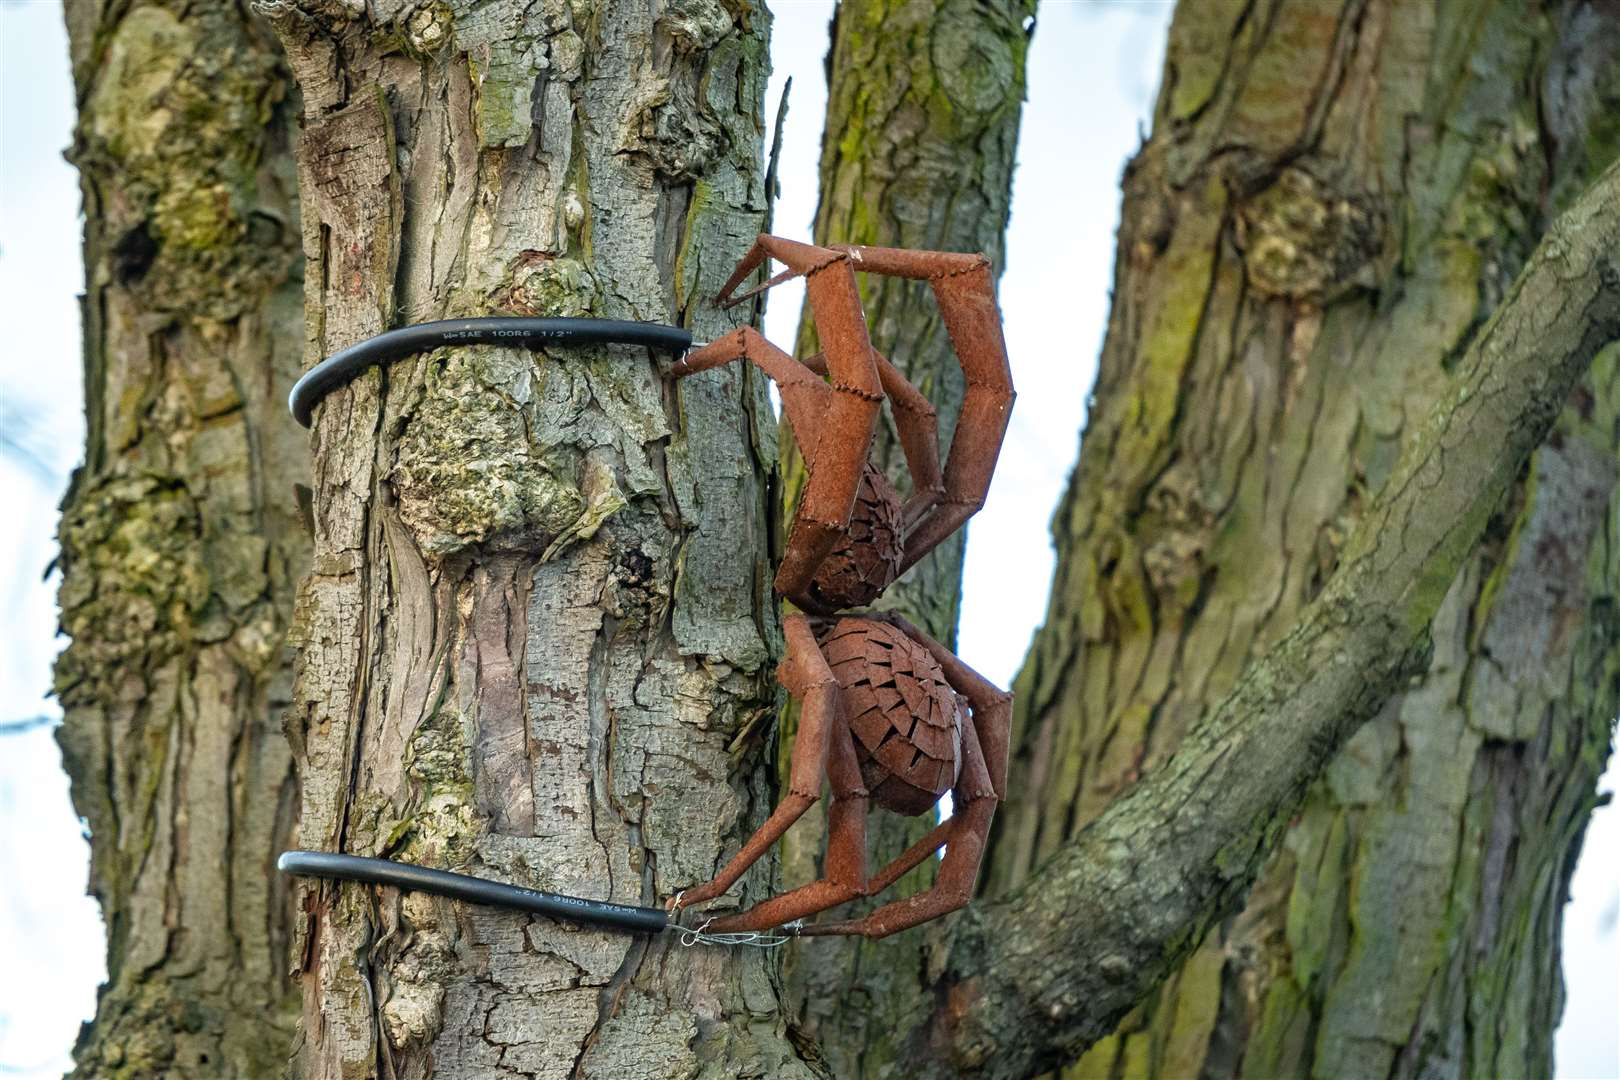 Spider - in a tree on the Village Green one of Tony Hillier's sculptures. Picture: Keith Heppell